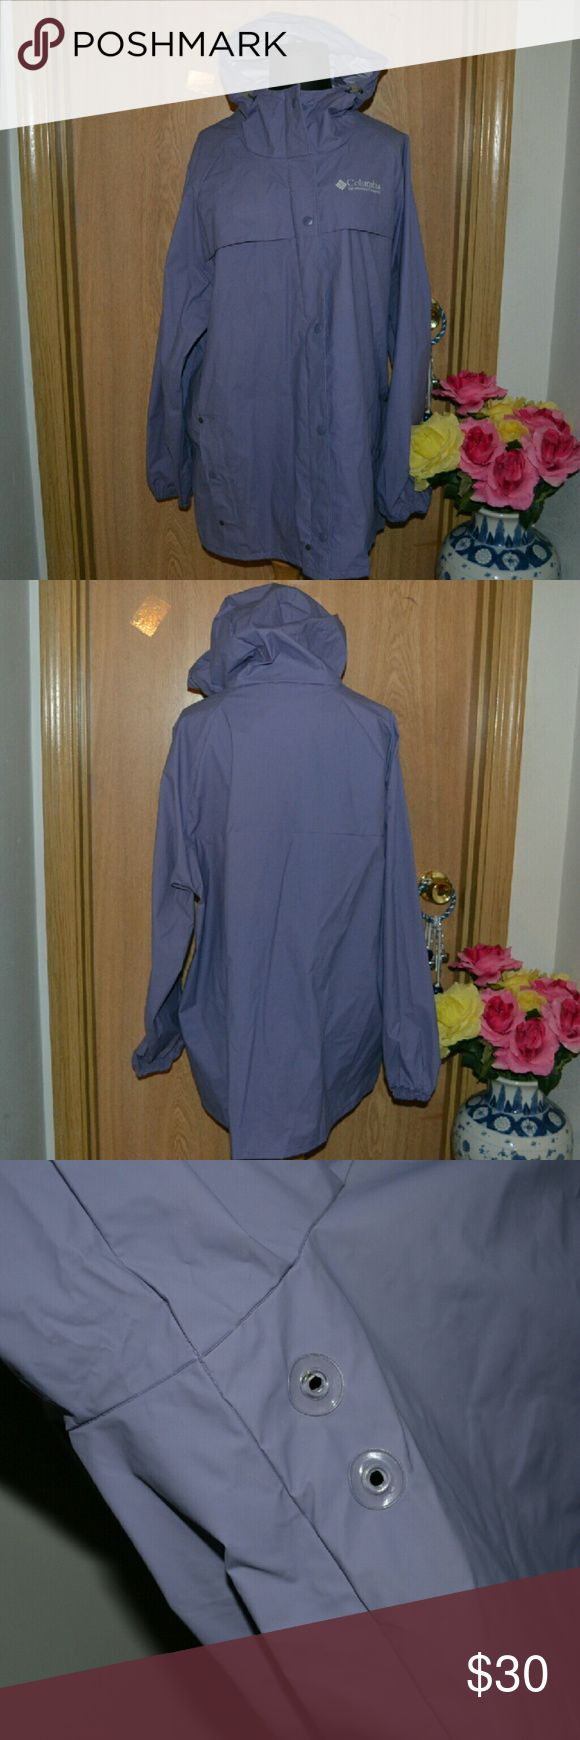 Columbia sportswear company purple Smoke free home!  Buy 3 get one free!  NO TRADES!!!  NO HOLDS!  offerdls Are always welcome as long as they're reasonable & through the OFFER BUTTON!  A super cute purple jacket by the brand Columbia sports wear company size large. In very good condition! Columbia Jackets & Coats